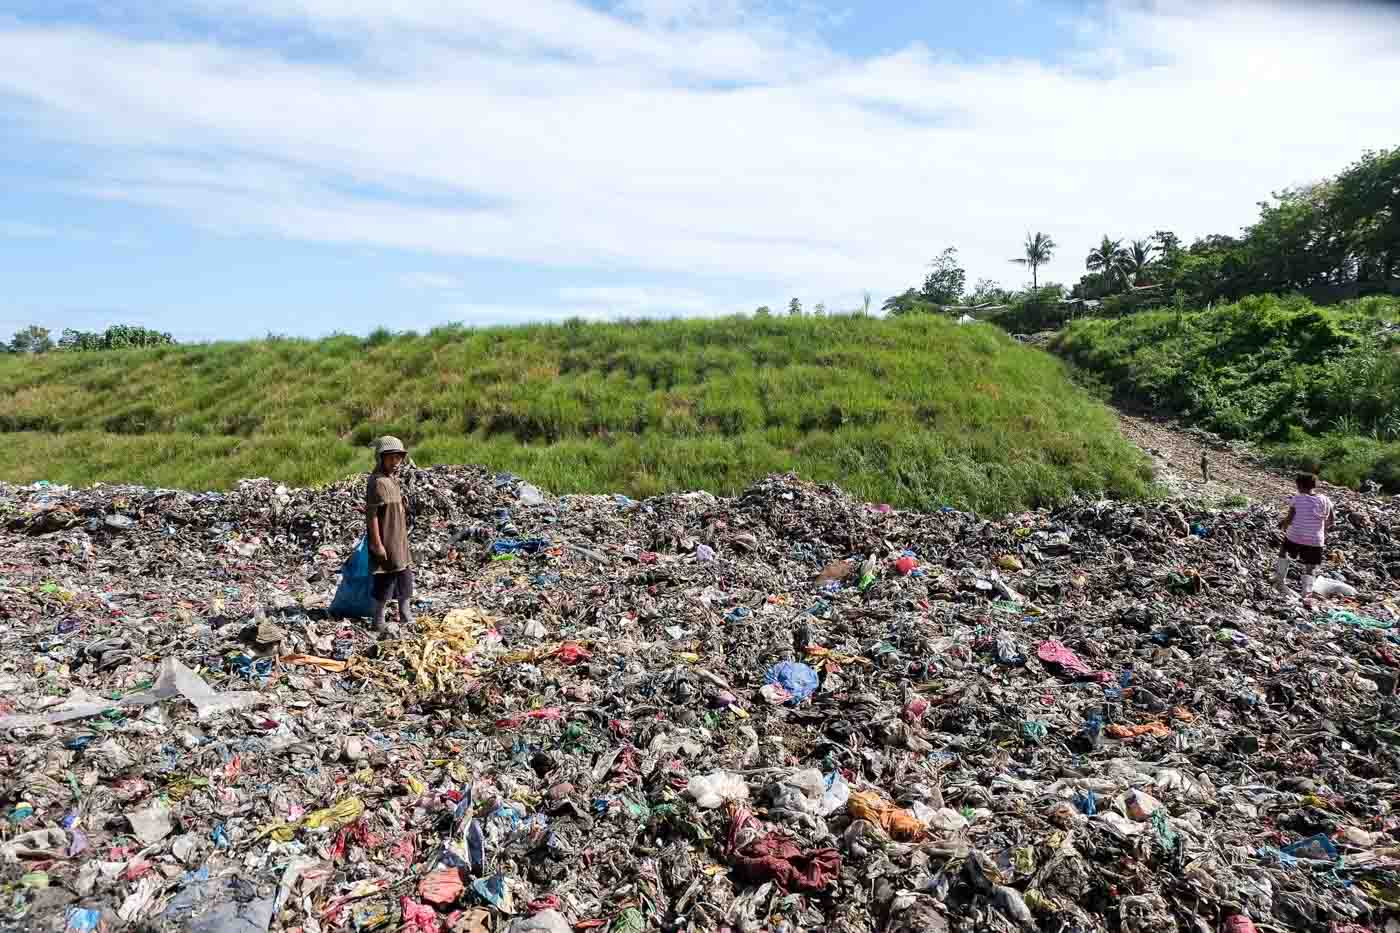 sanitary landfill A sanitary landfill is a pit with a protected bottom where trash is buried in layers, compacted (pressed down to make it more solid), and covered a sanitary landfill can reduce harm from waste that has collected, and is safer than an open dumping site.